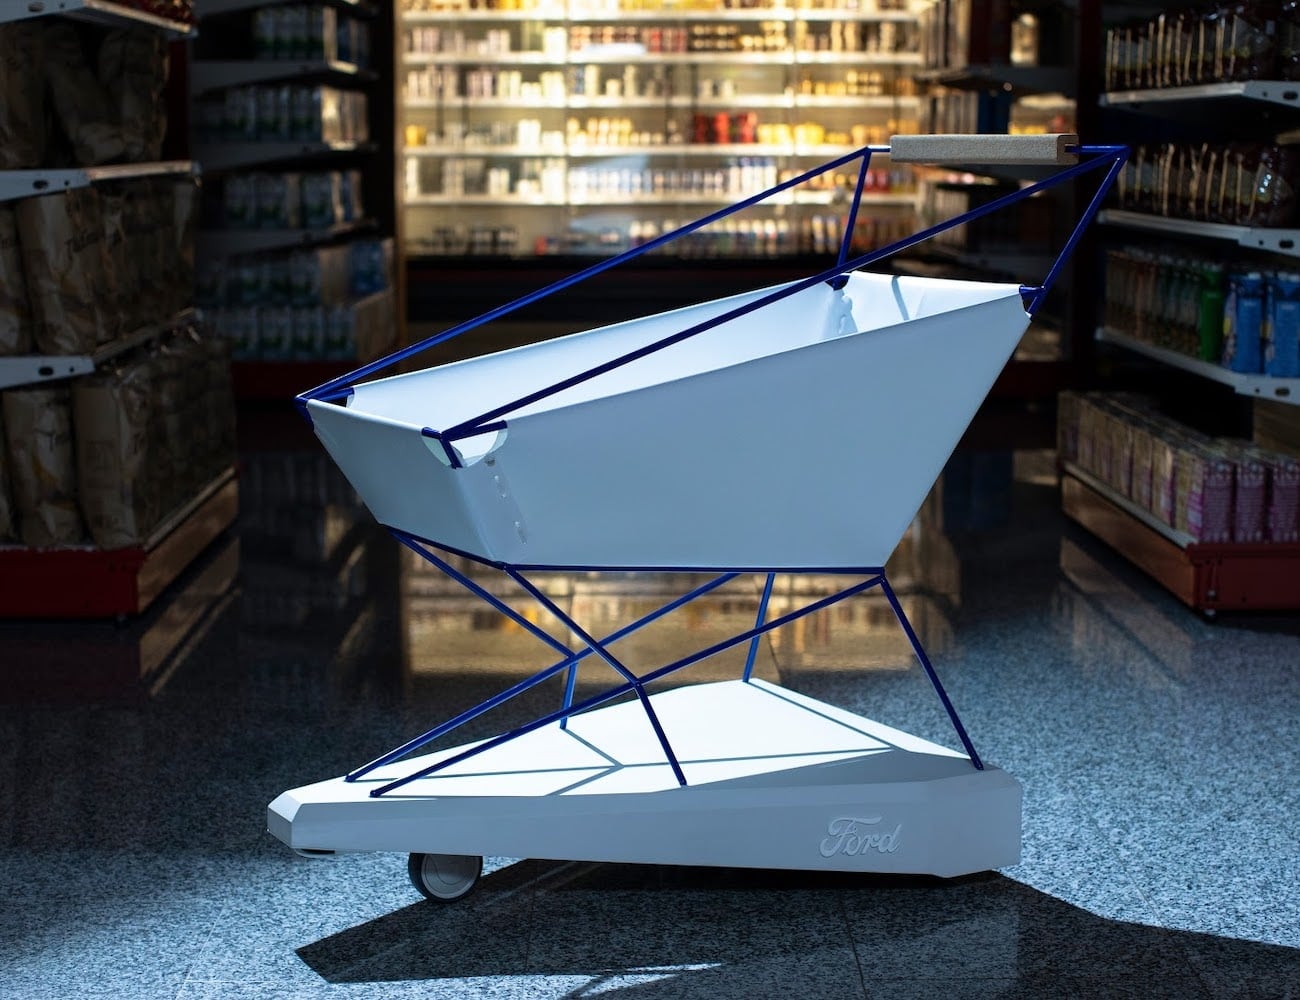 Ford Self-Braking Shopping Cart avoids grocery store accidents